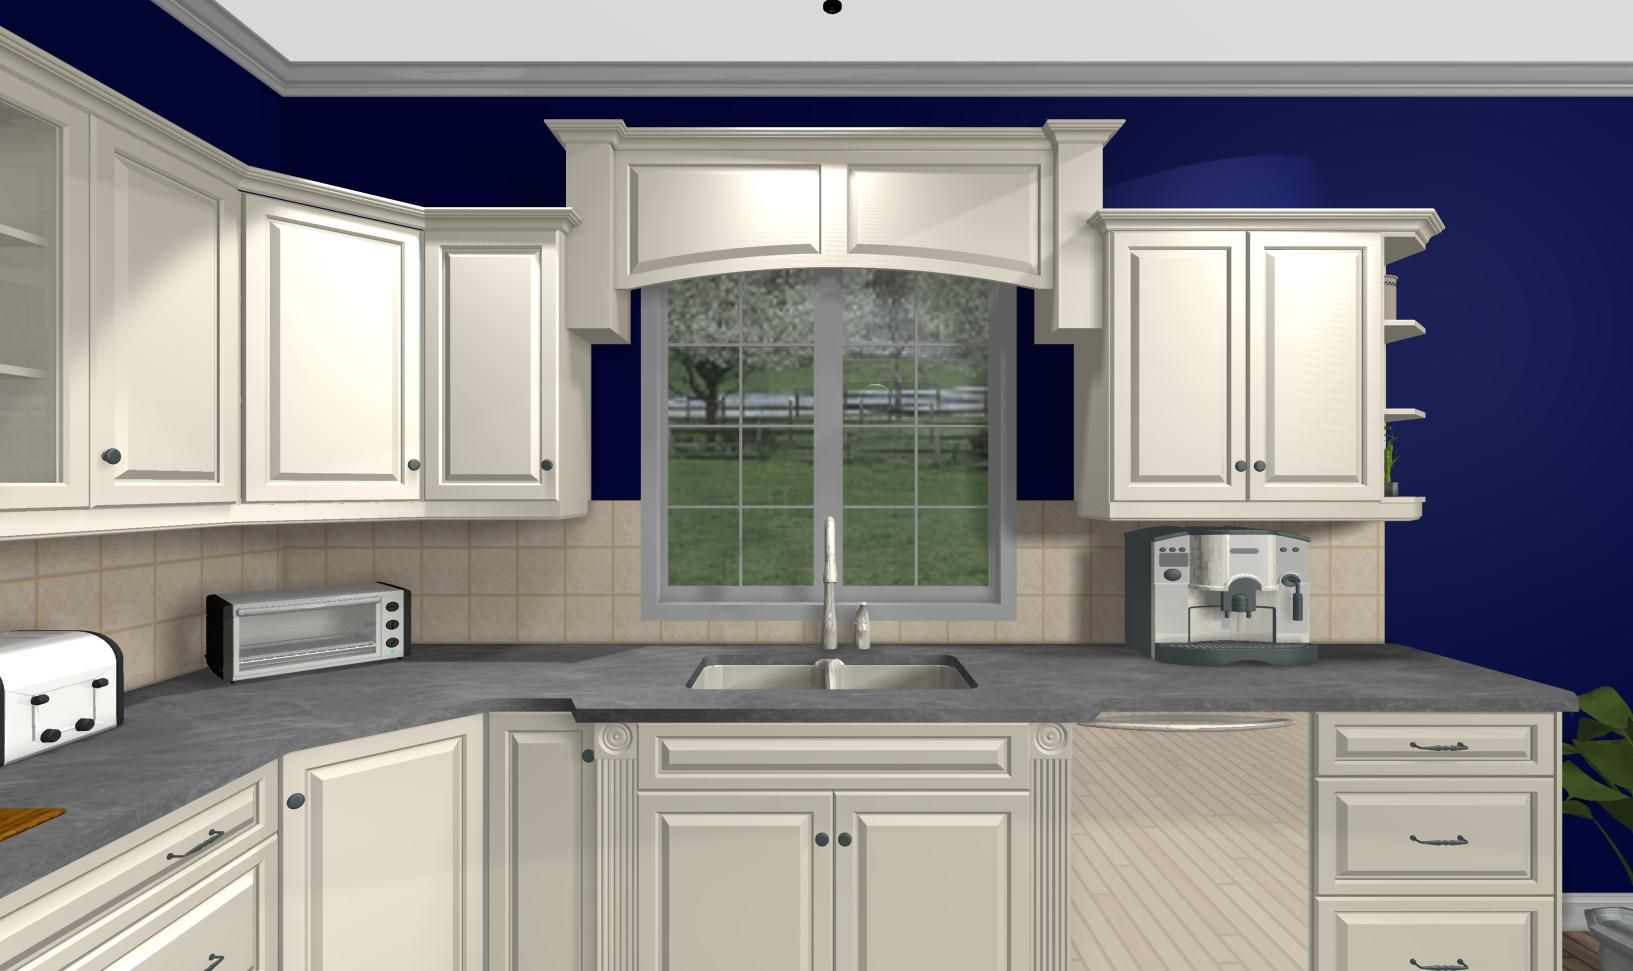 Over the sink kitchen window treatments  wood valance over sink and blue walls  for the home  pinterest